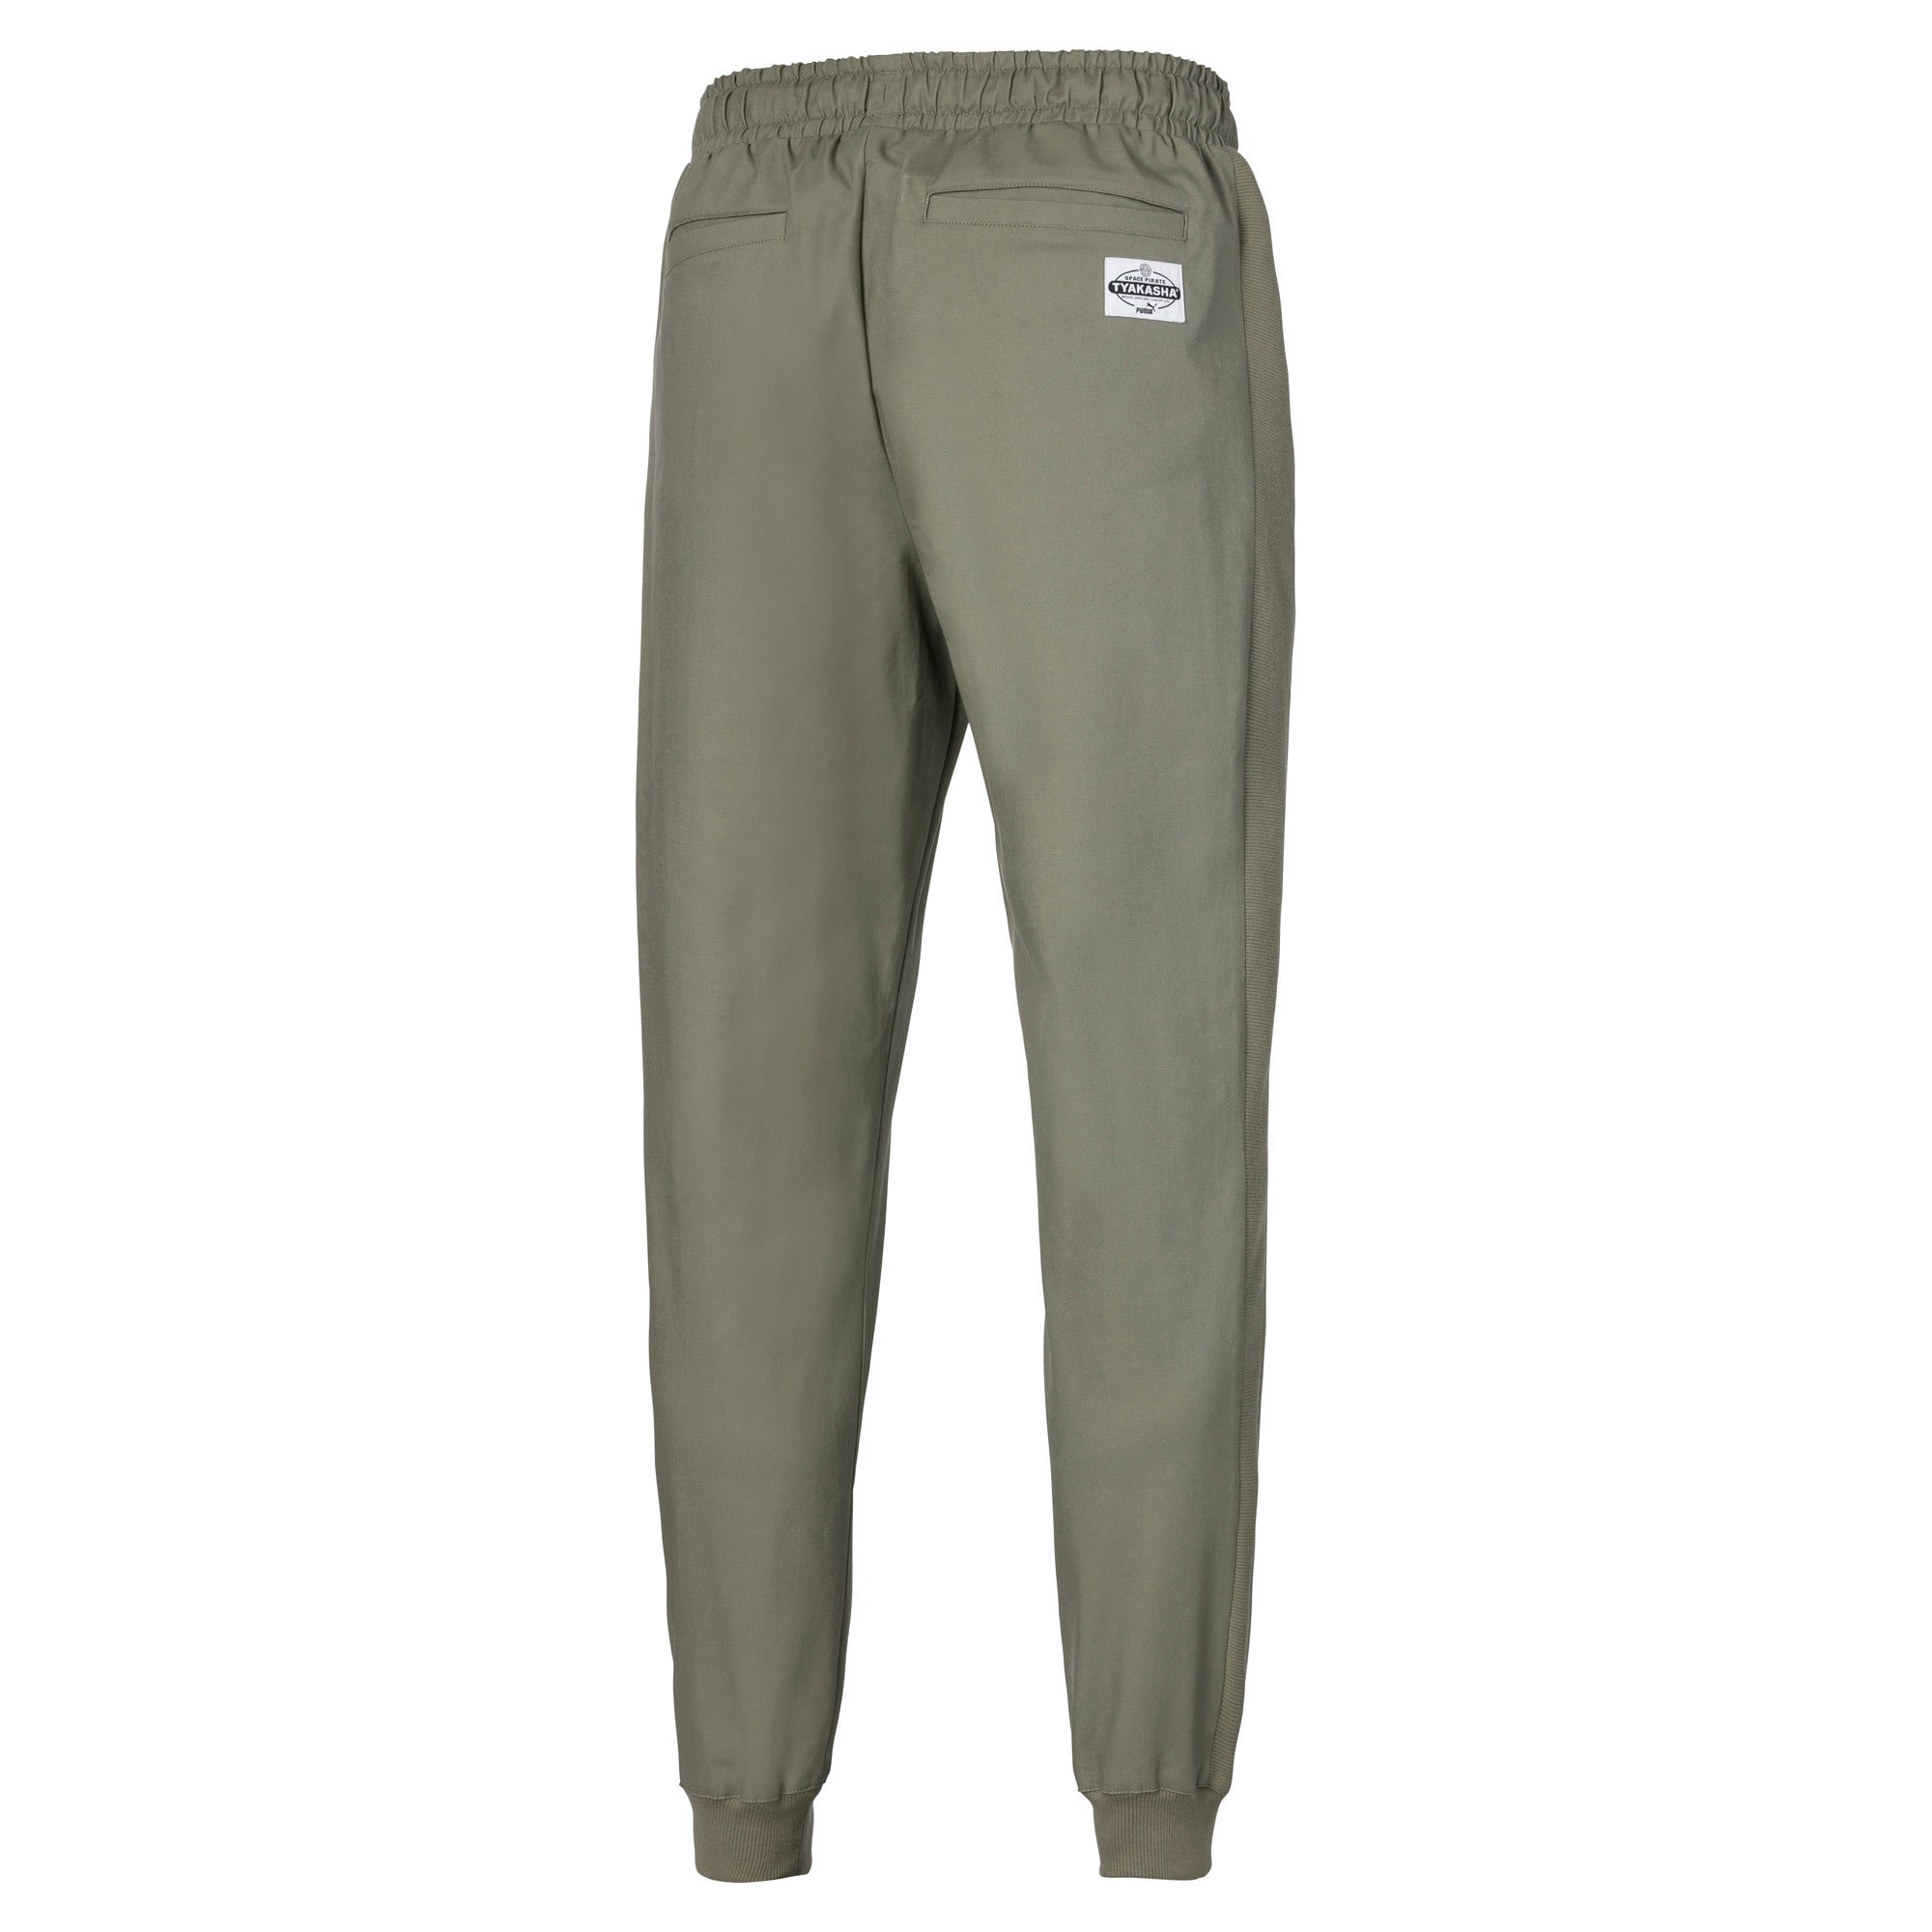 Thumbnail 5 of PUMA x TYAKASHA Herren Gewebte Hose, Vetiver, medium